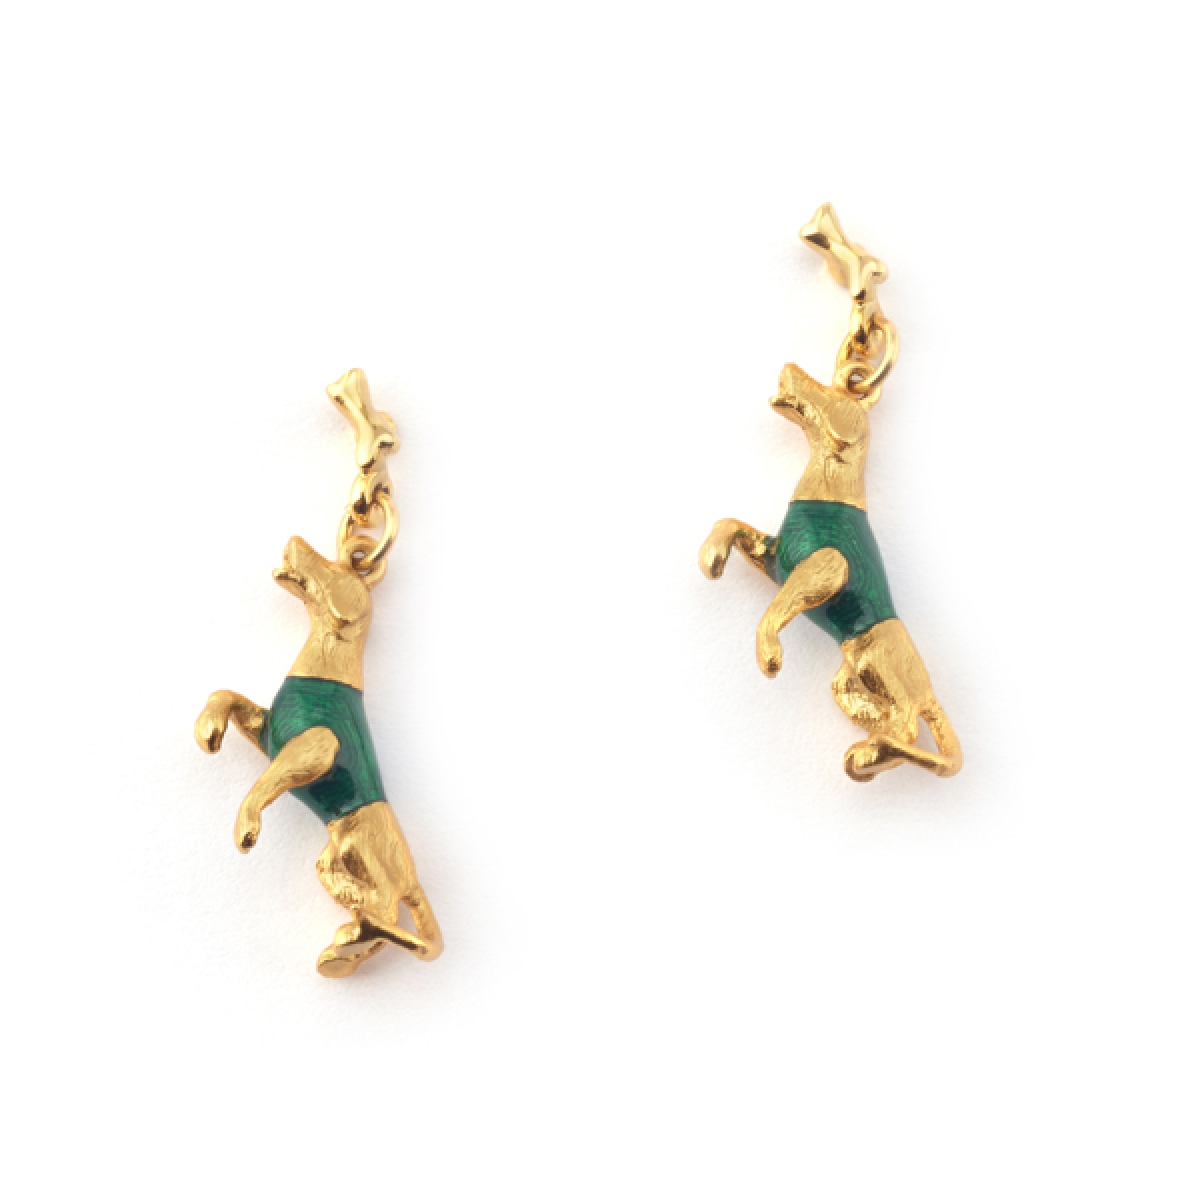 Hungarian Vizsla Earrings